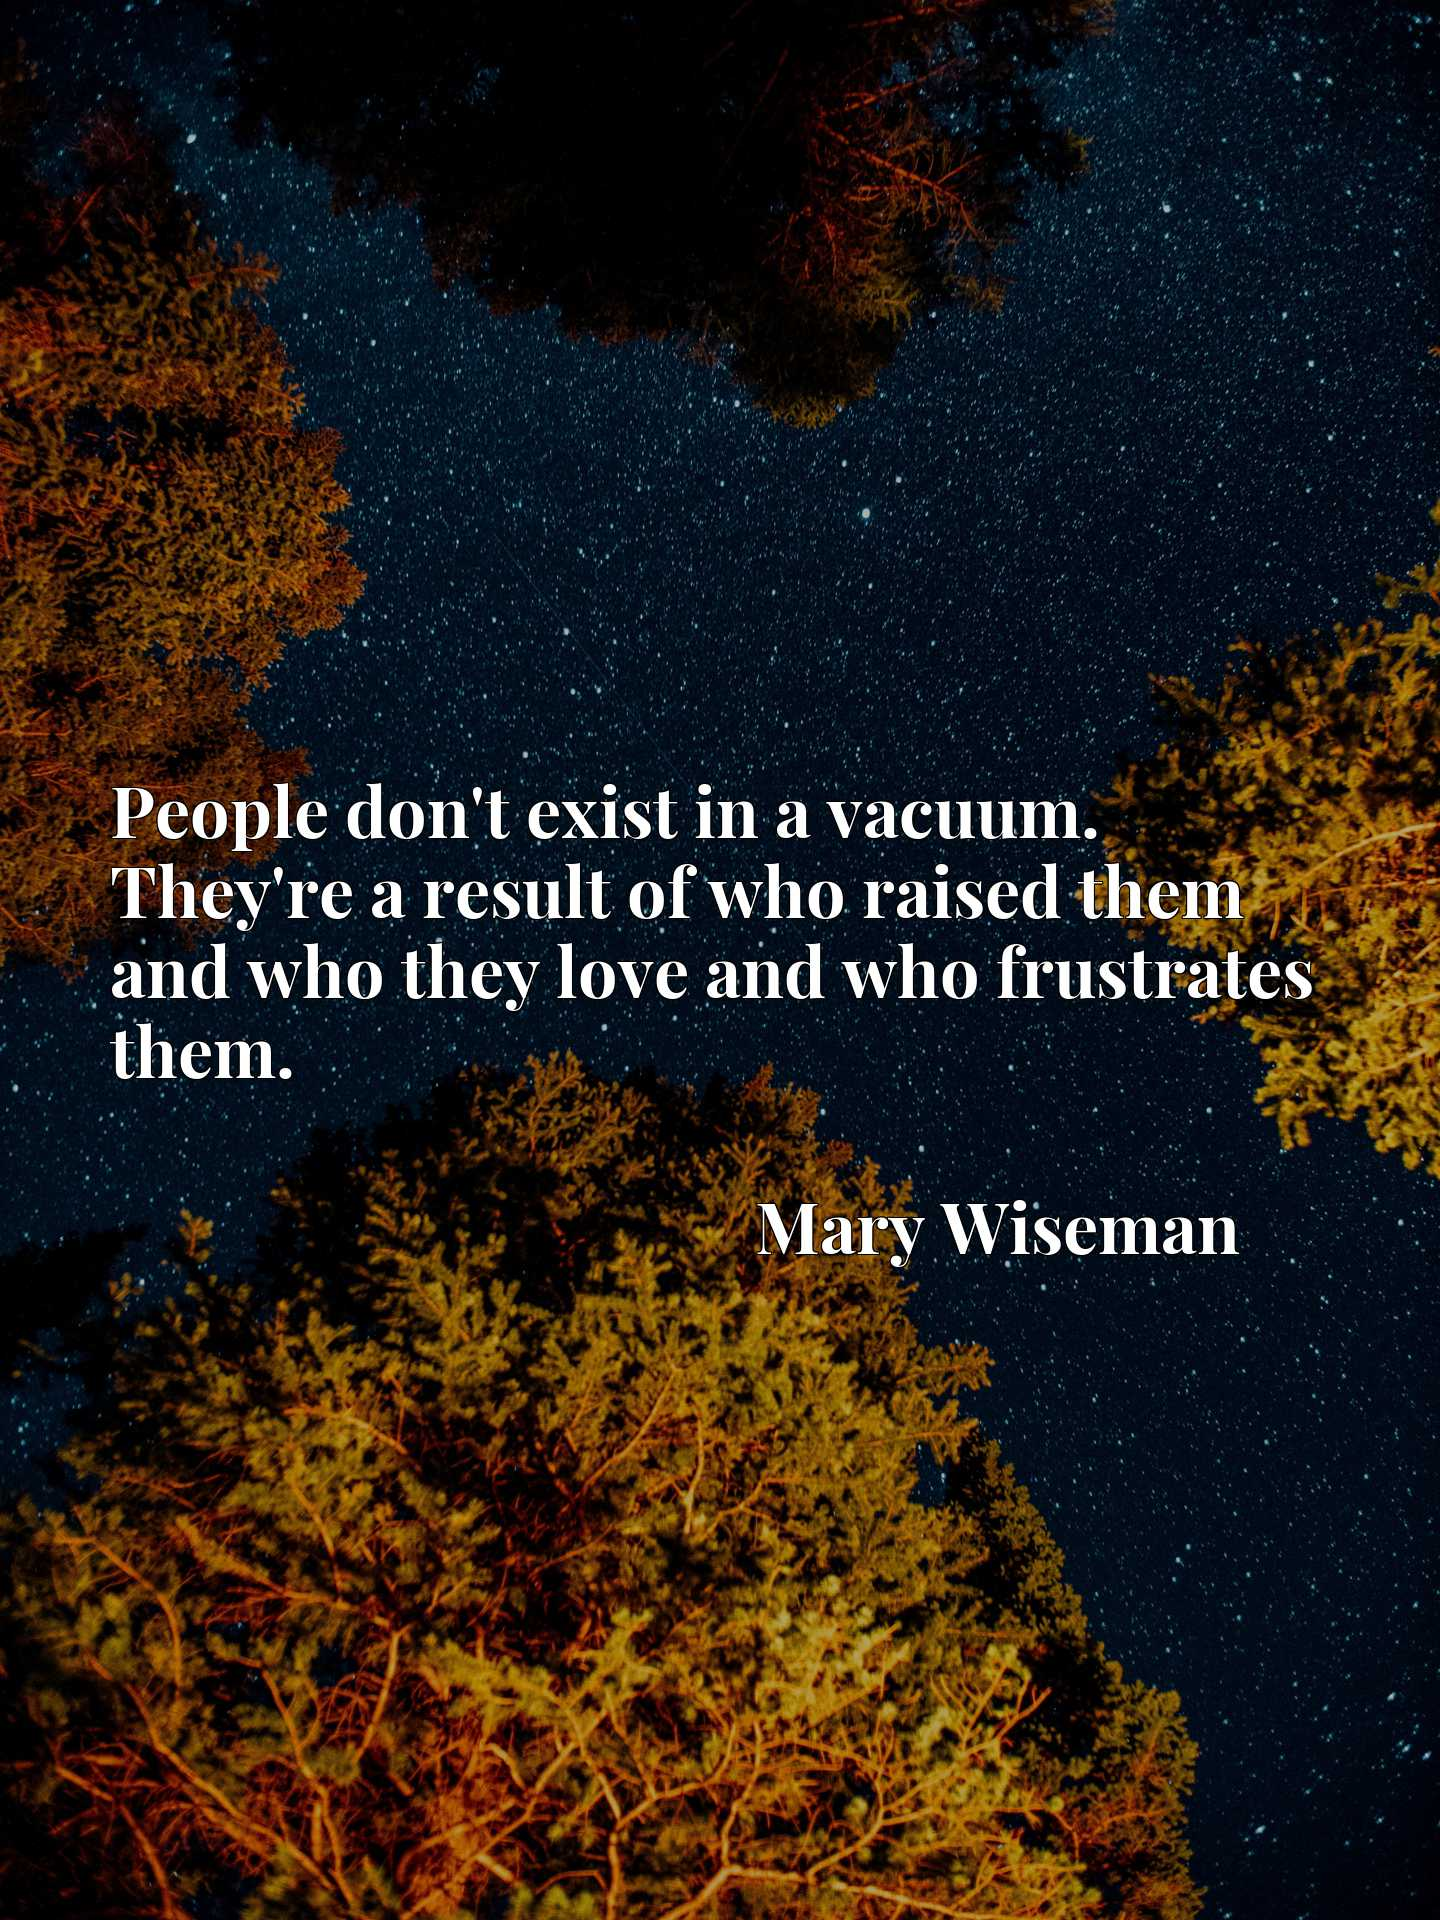 Quote Picture :People don't exist in a vacuum. They're a result of who raised them and who they love and who frustrates them.